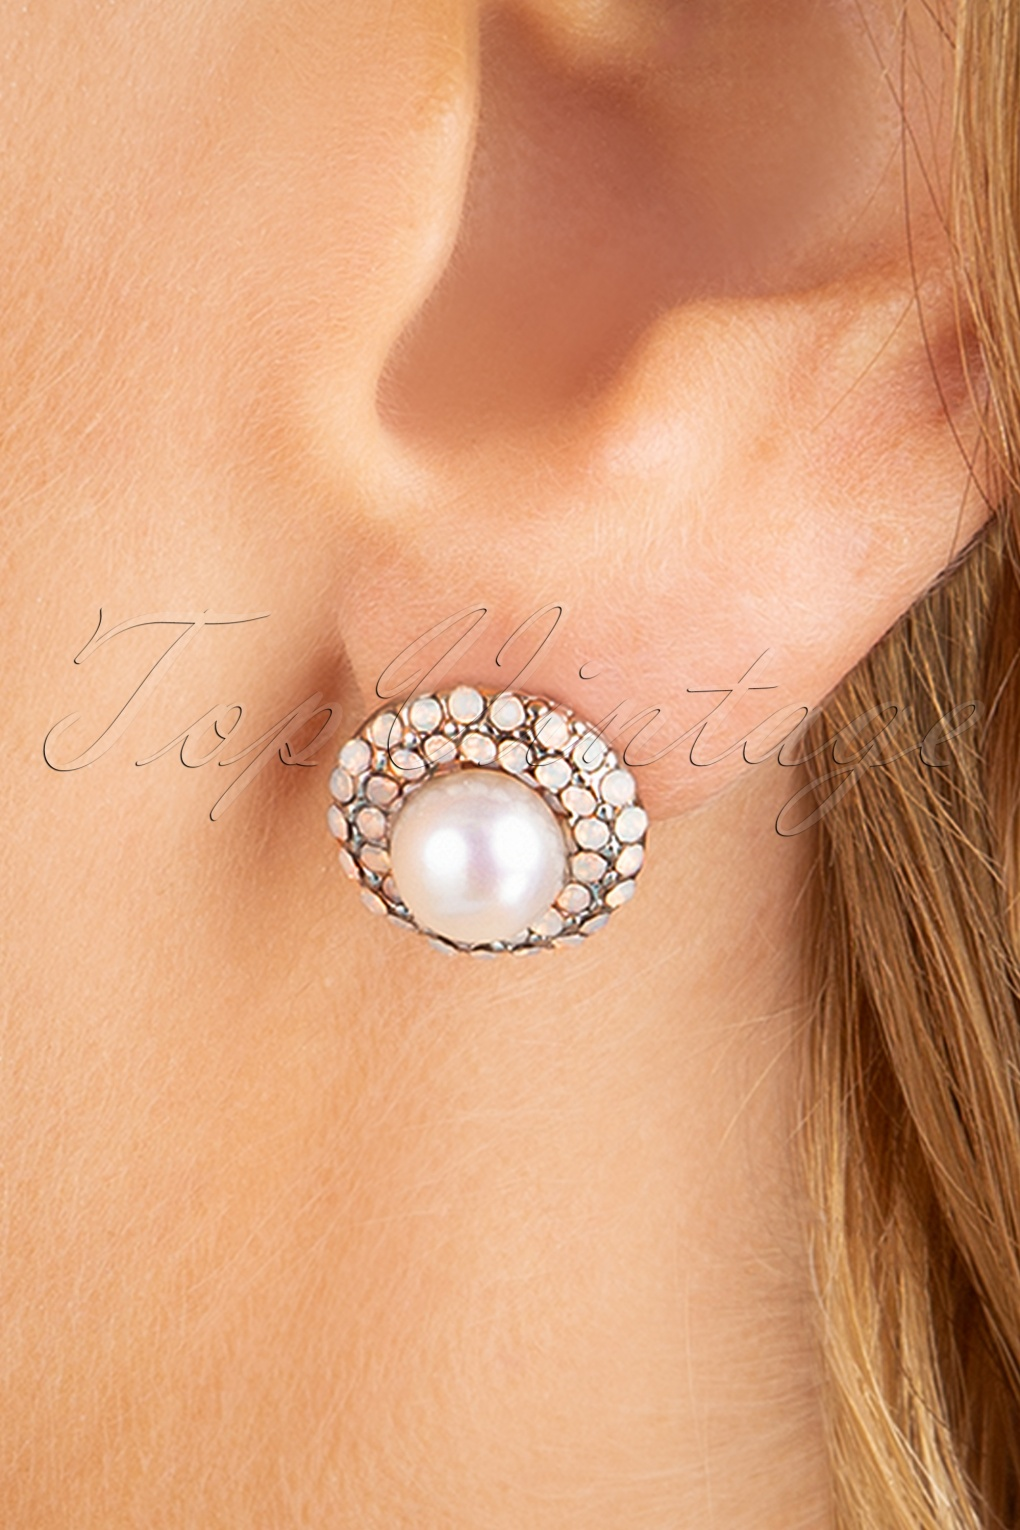 60s Fancy Dress and Quality Clothing 1960s UK 50s Sparkly Pearl Earstuds in Silver £13.62 AT vintagedancer.com